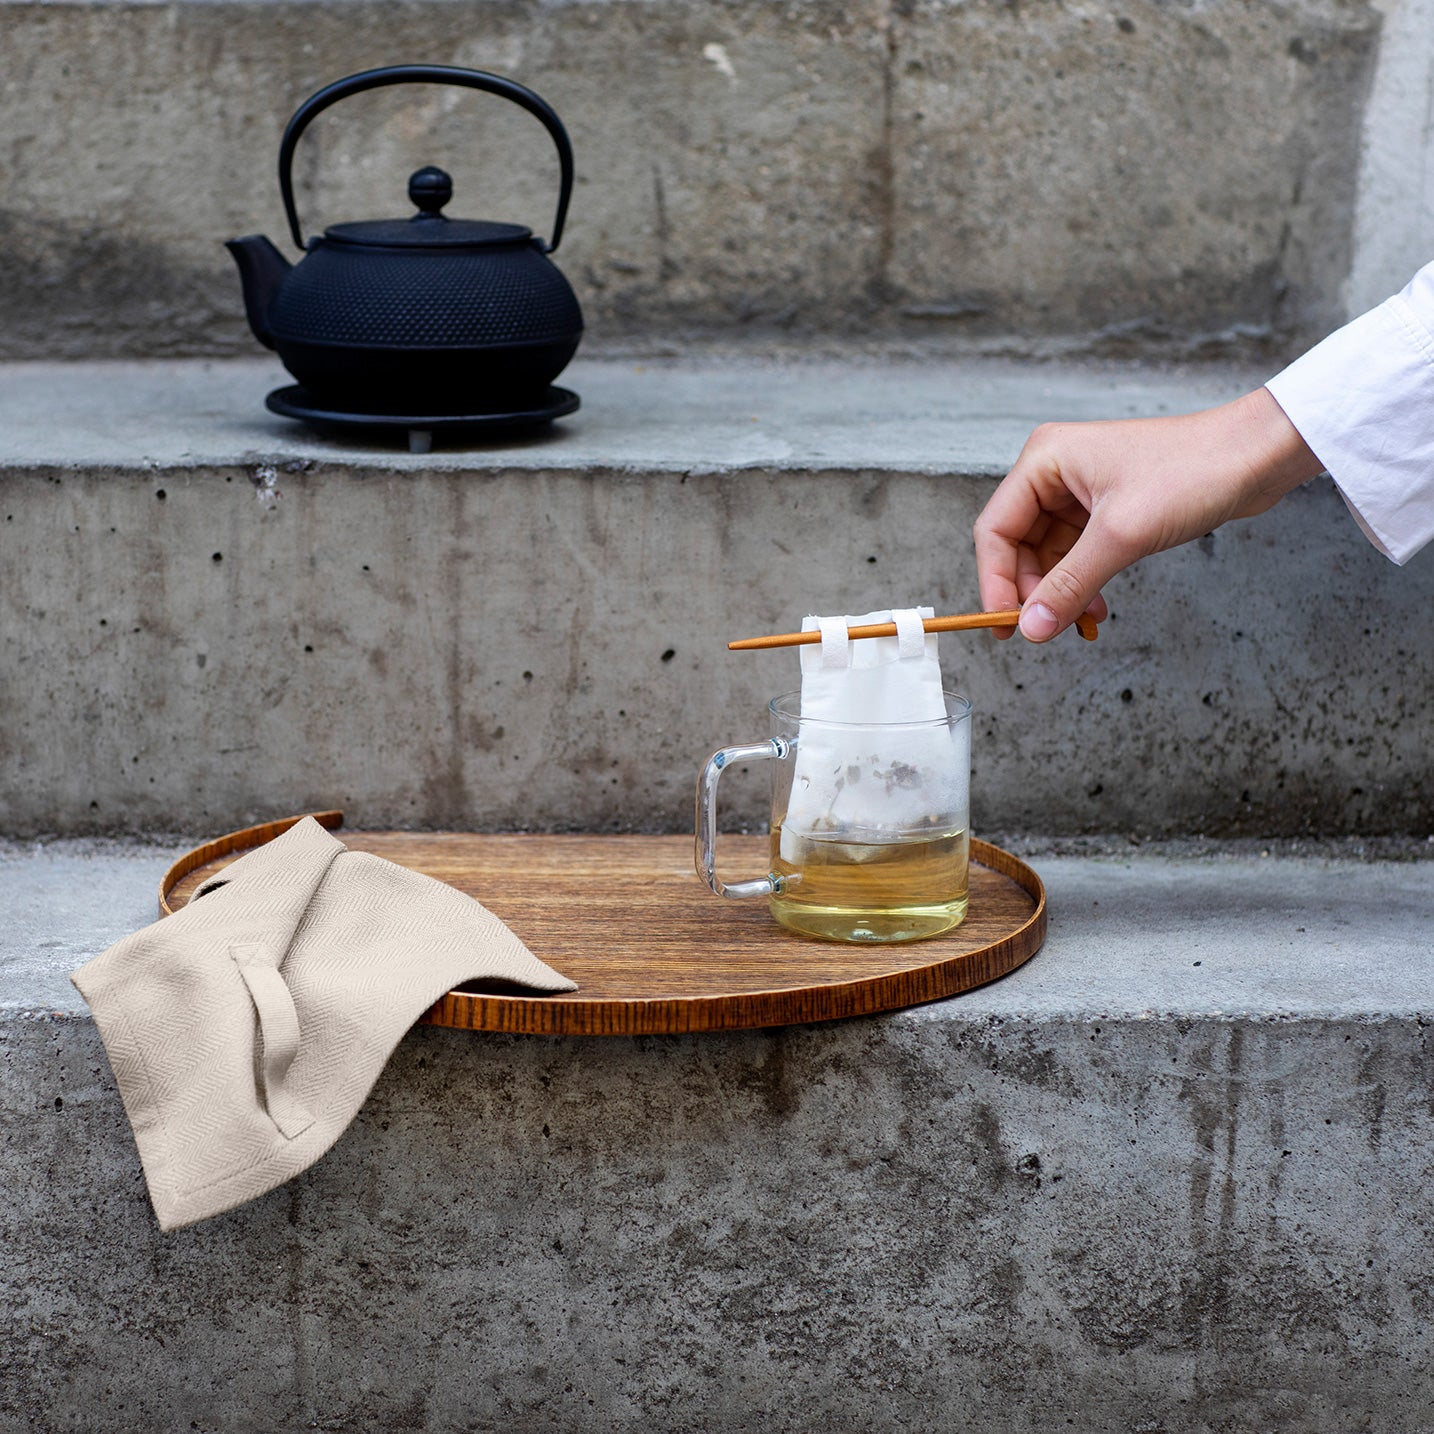 Concrete steps with tea making equipment: black traditional kettle, wooden tray with cotton cloth and tea in a glass mug